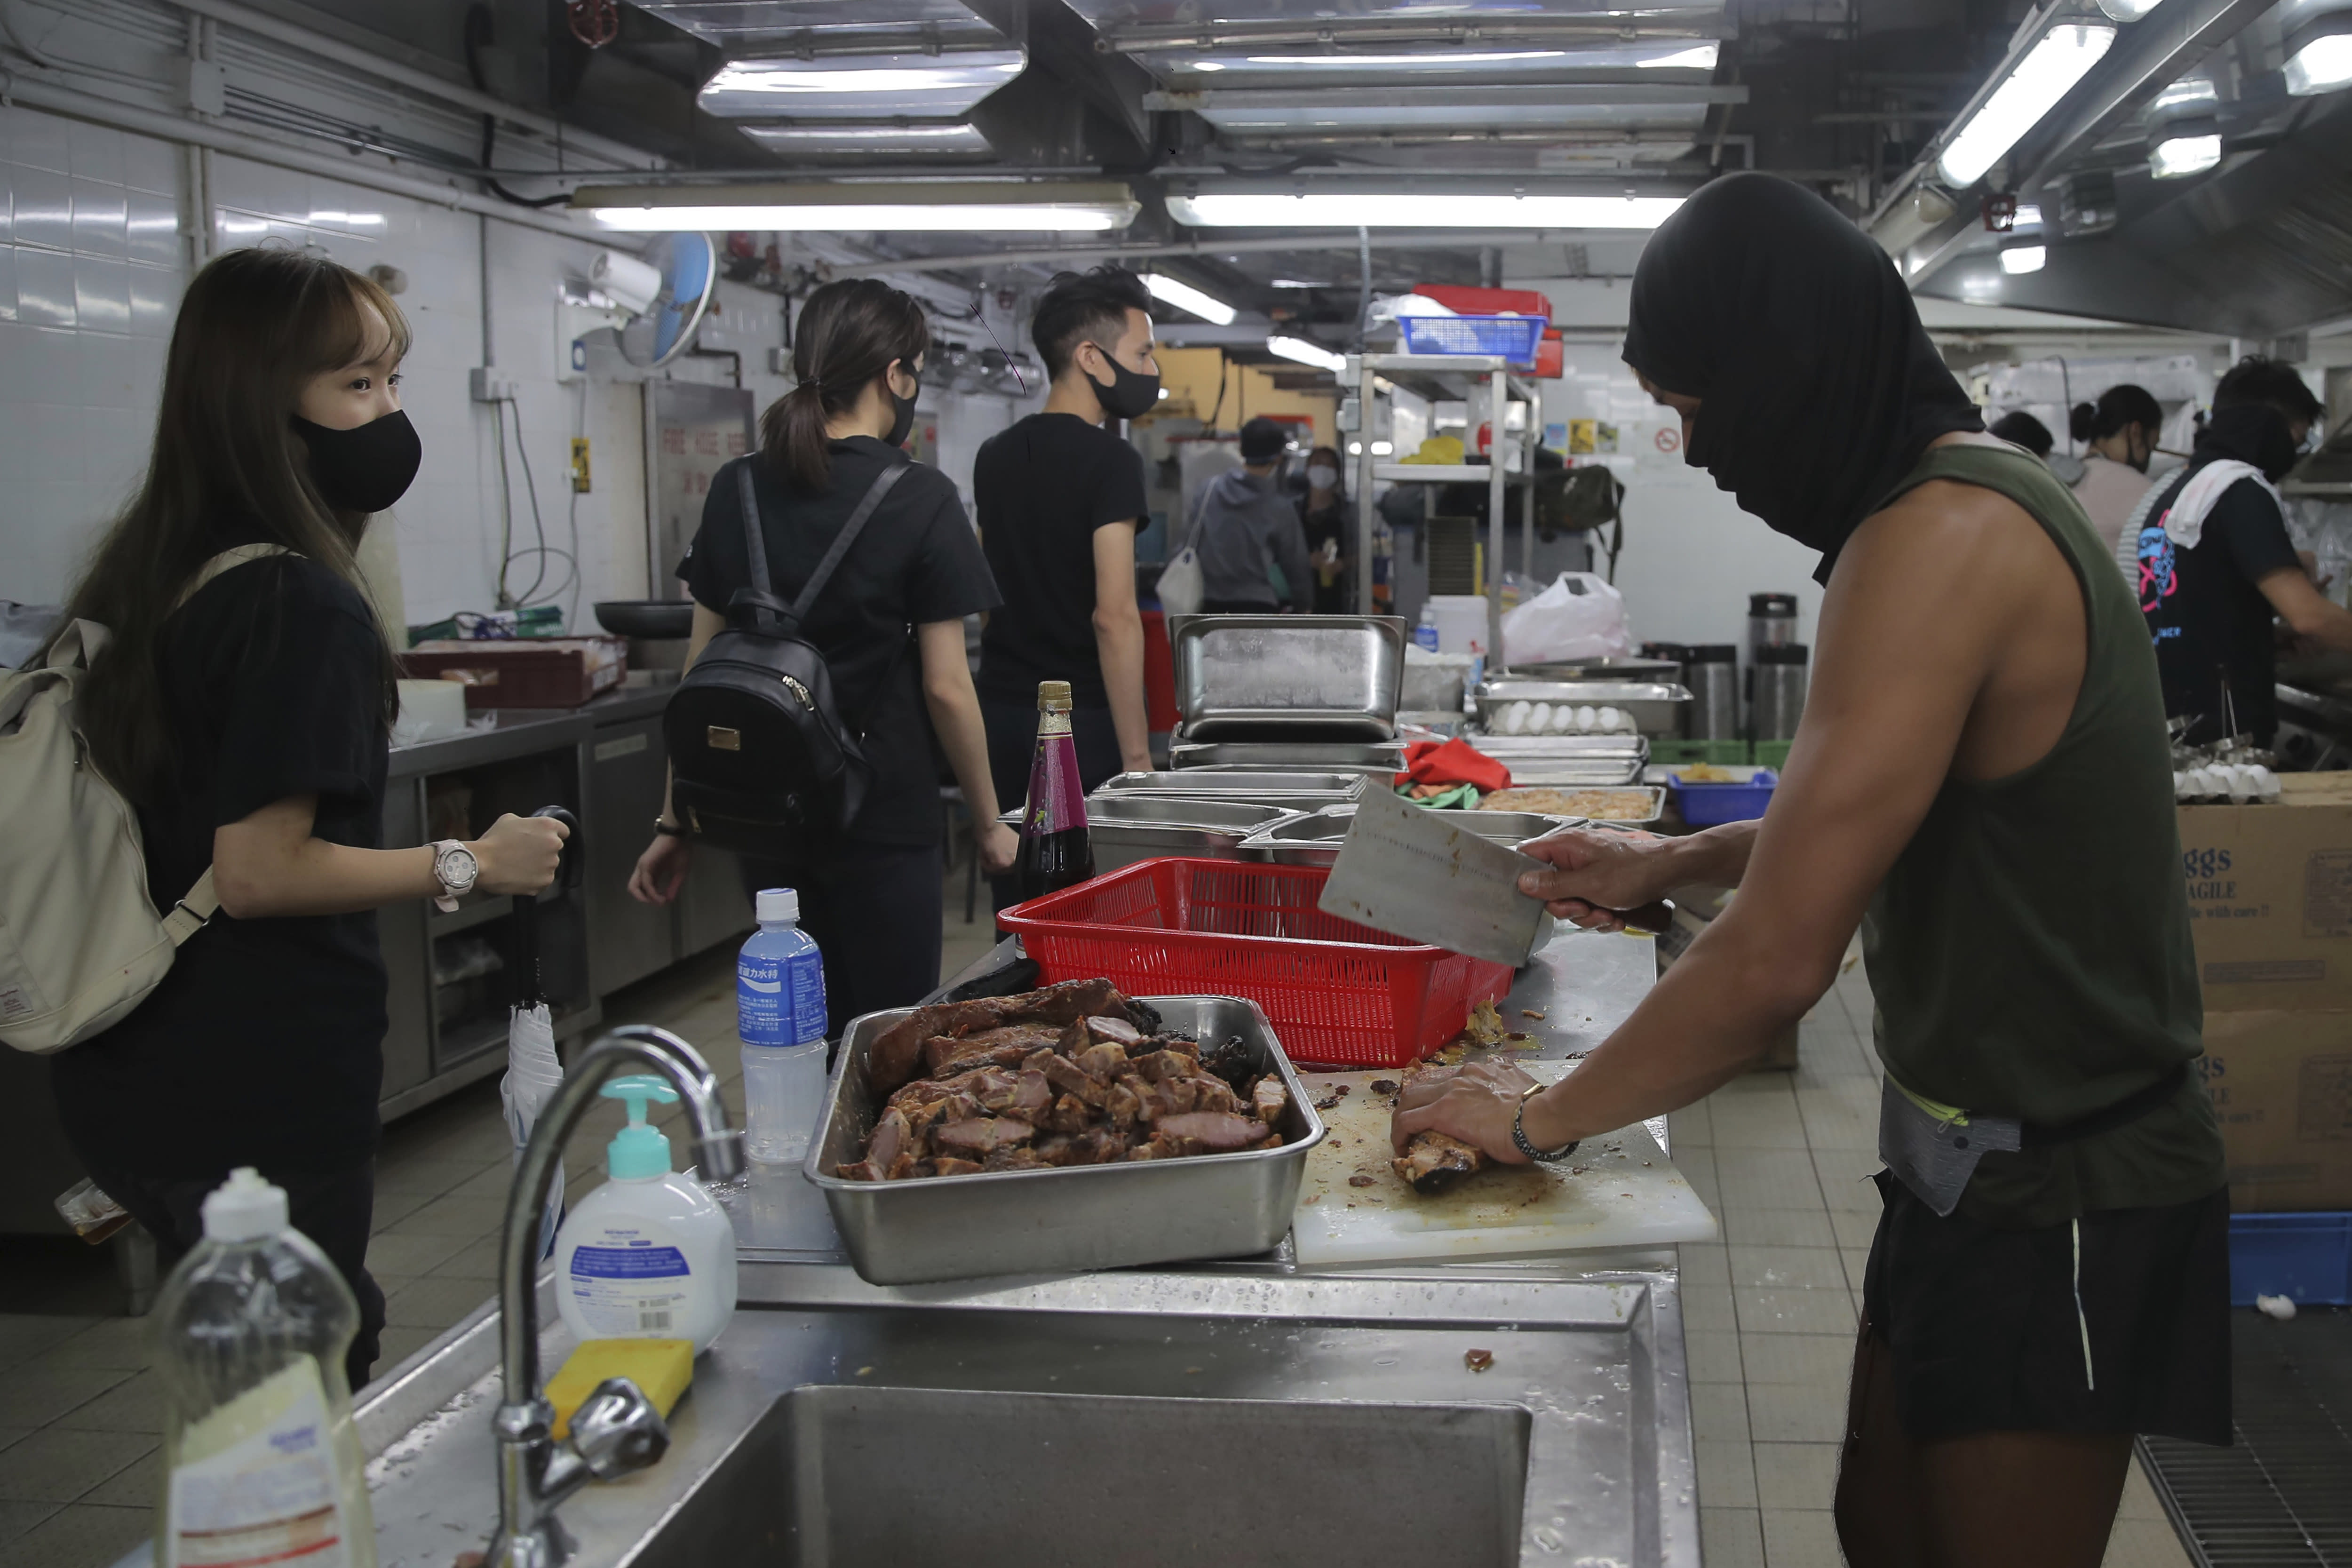 Protestors wear face masks as they cook meals for fellow protestors in a canteen at Hong Kong Polytechnic University in Hong Kong, Thursday, Nov. 14, 2019. Hong Kong residents endured traffic snarls and mass transit disruptions Thursday as protesters closed some main roads and rail networks while police skirmished with militant students at major universities. (AP Photo/Kin Cheung)